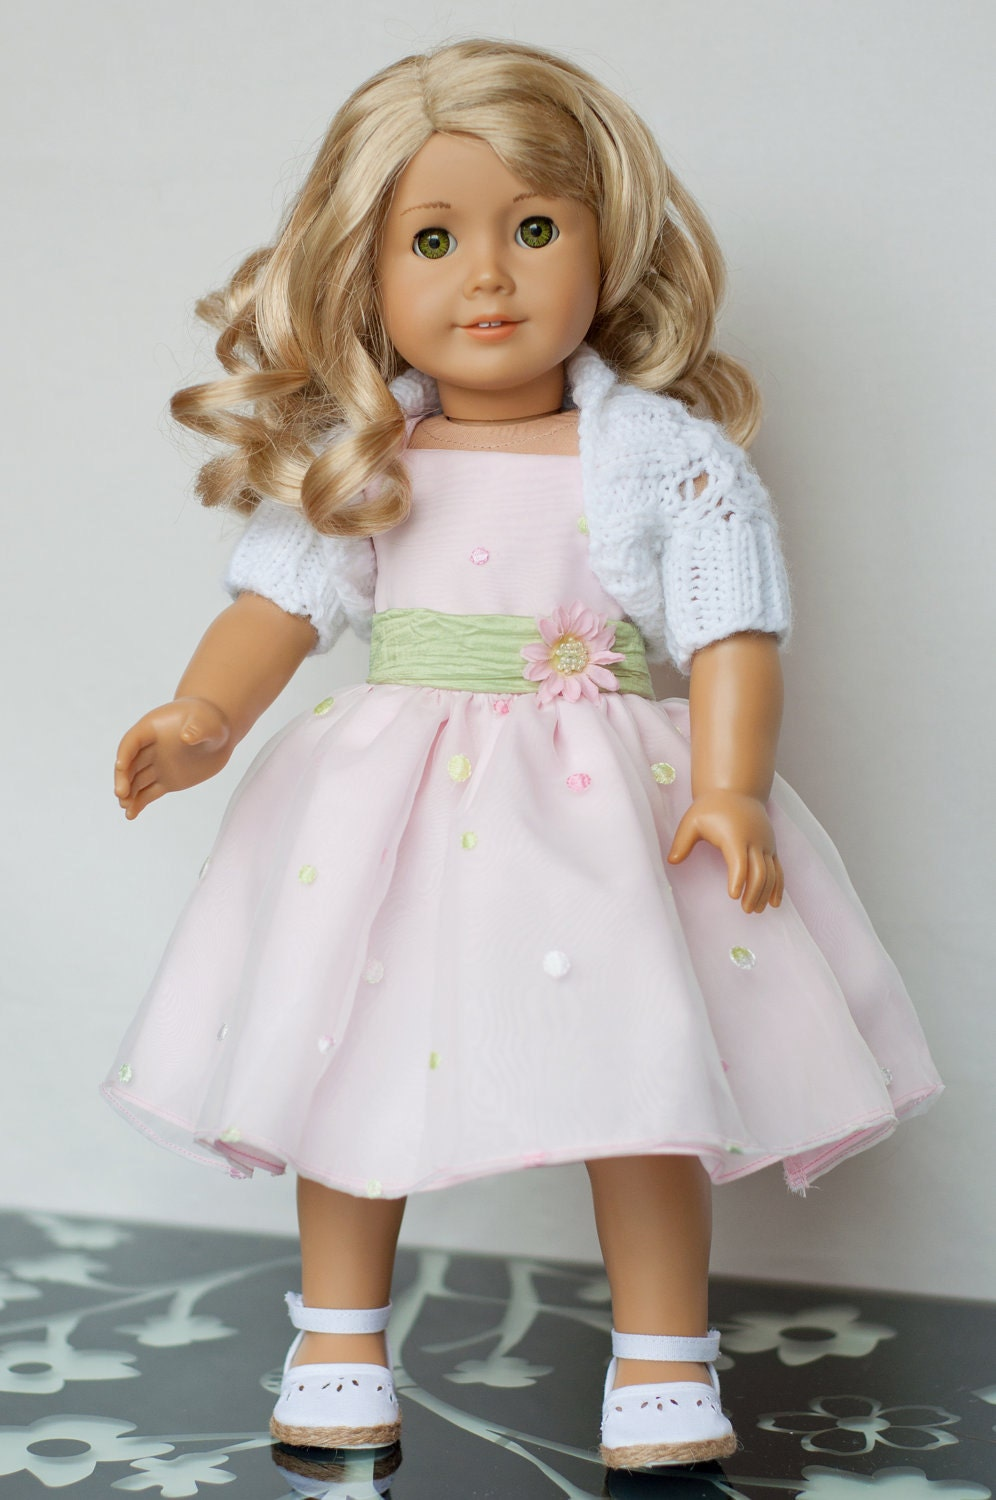 18 inch Doll Clothes: Pretty in Pink Party Dress, Shrug and Shoes for American Girl Doll Clothes for American Girl Dolls OOAK